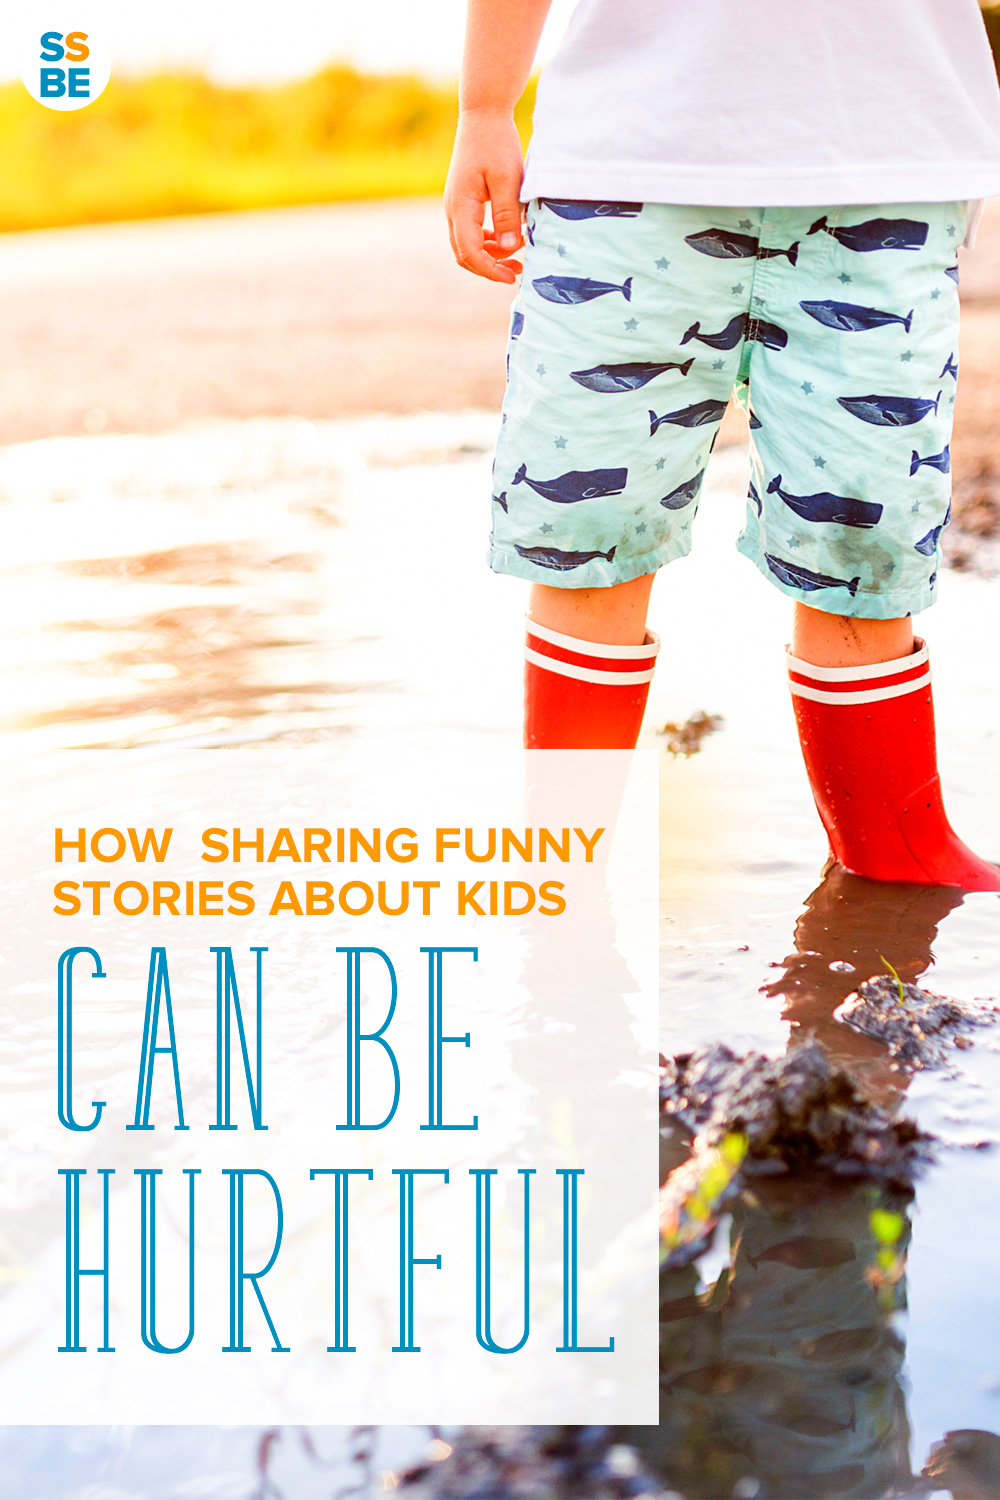 We've all shared our kids' funny quirks. But sometimes we can unintentionally hurt them. Here's why laughing at kids can be hurtful.